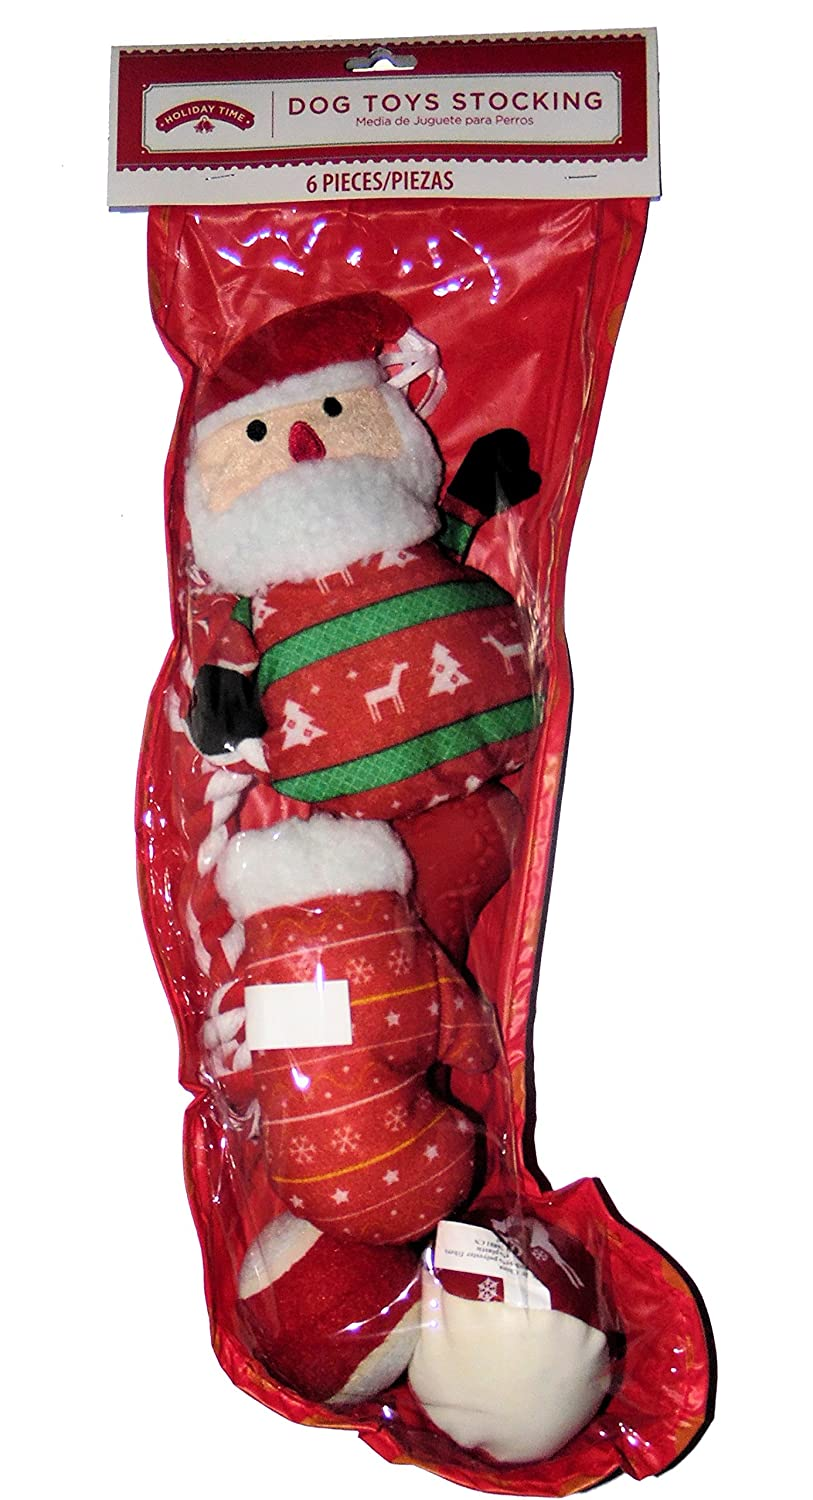 lovely Red Holiday Christmas Stocking with Dog Toys 6 pieces Balls, Rope, and Stuffed Chew Toys by Holiday Time